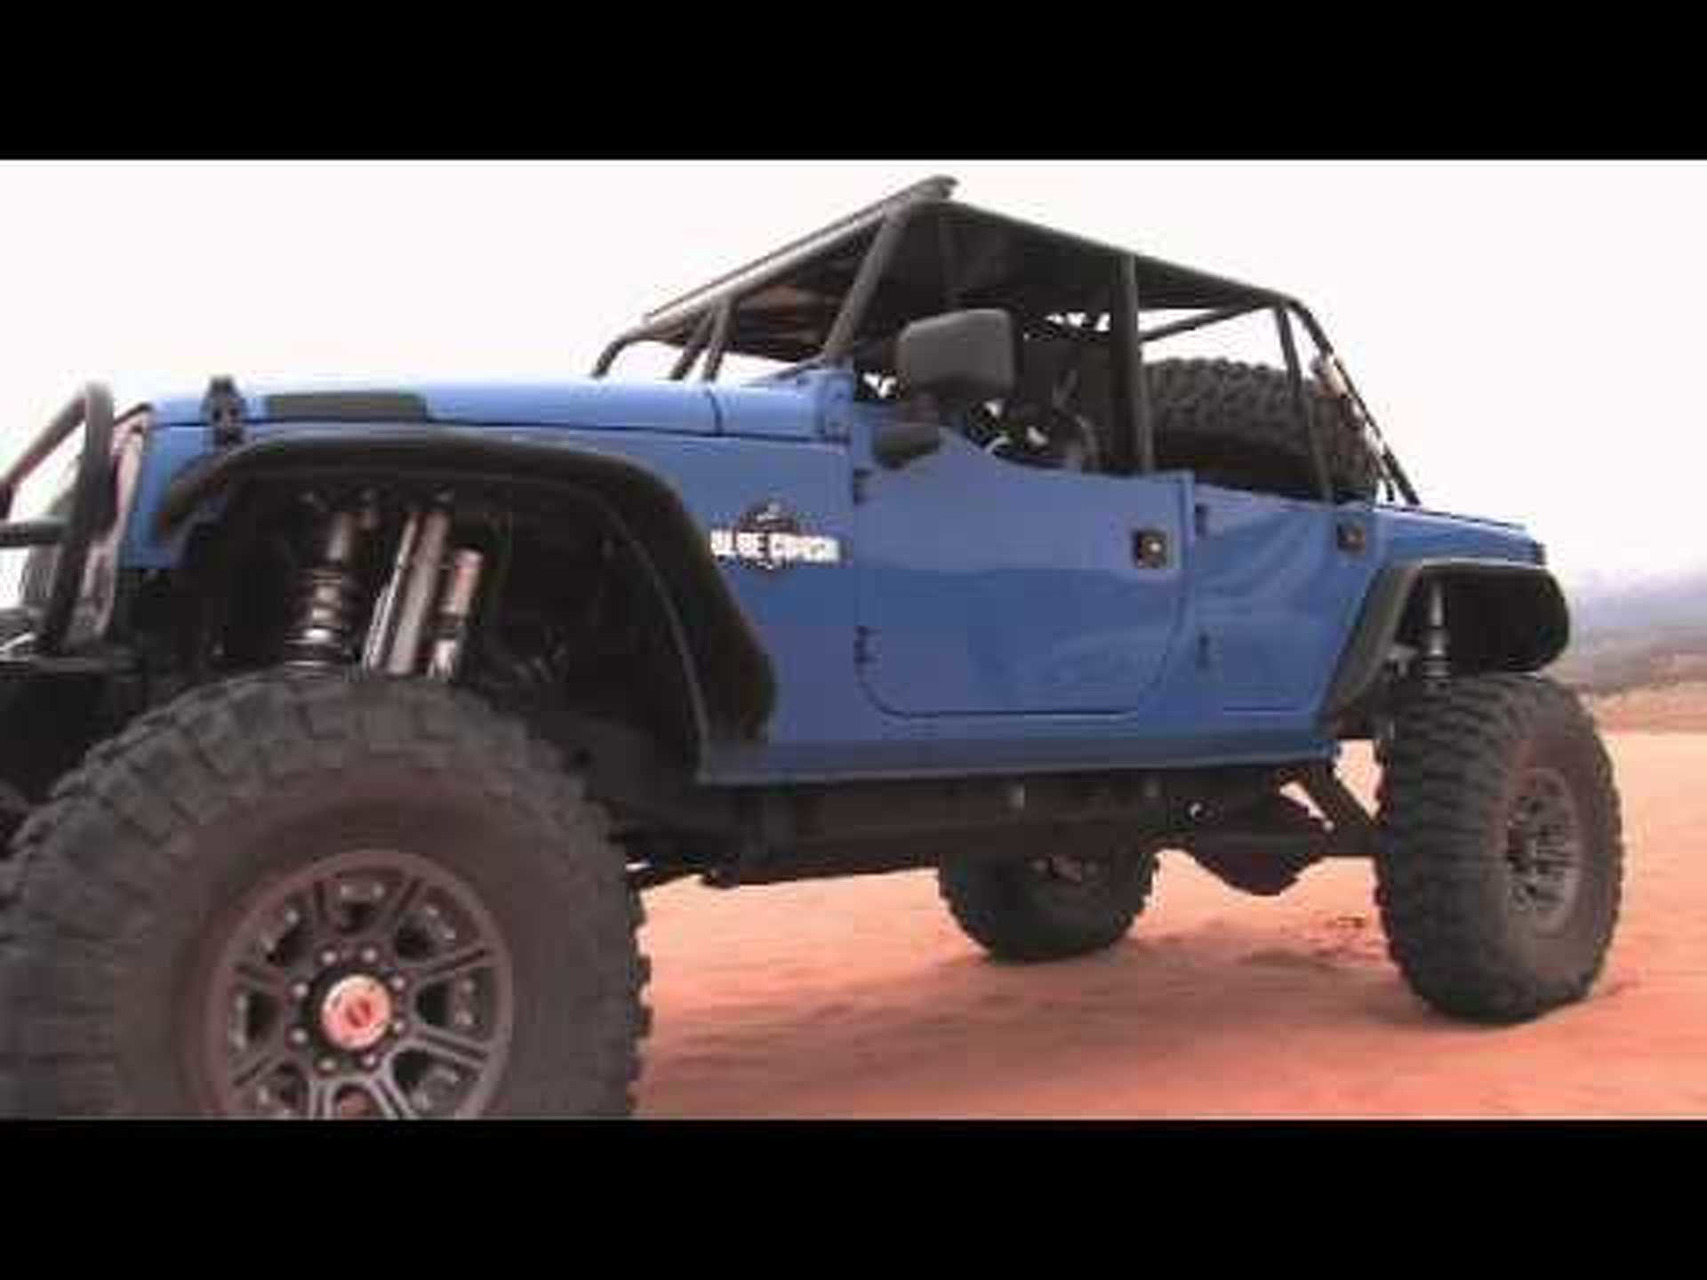 Mopar partners with Jeep to bring an exciting line-up of vehicles to Moab